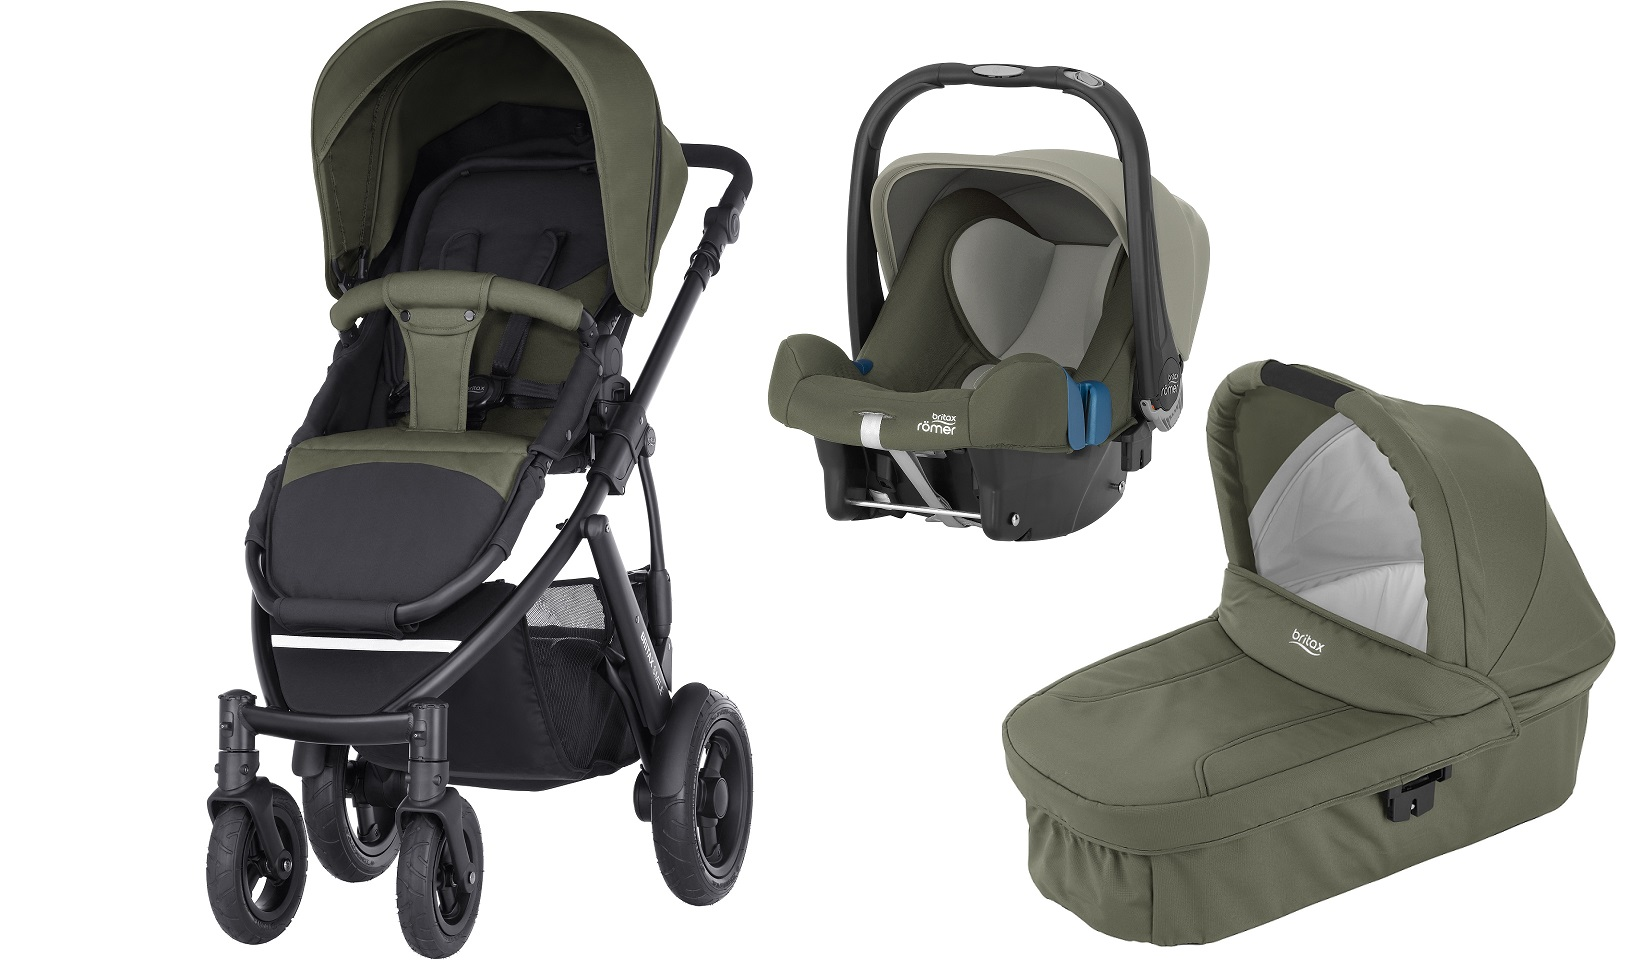 britax r mer smile 2 inkl hard carrycot babyschale baby safe plus shr ii 2017 olive green. Black Bedroom Furniture Sets. Home Design Ideas